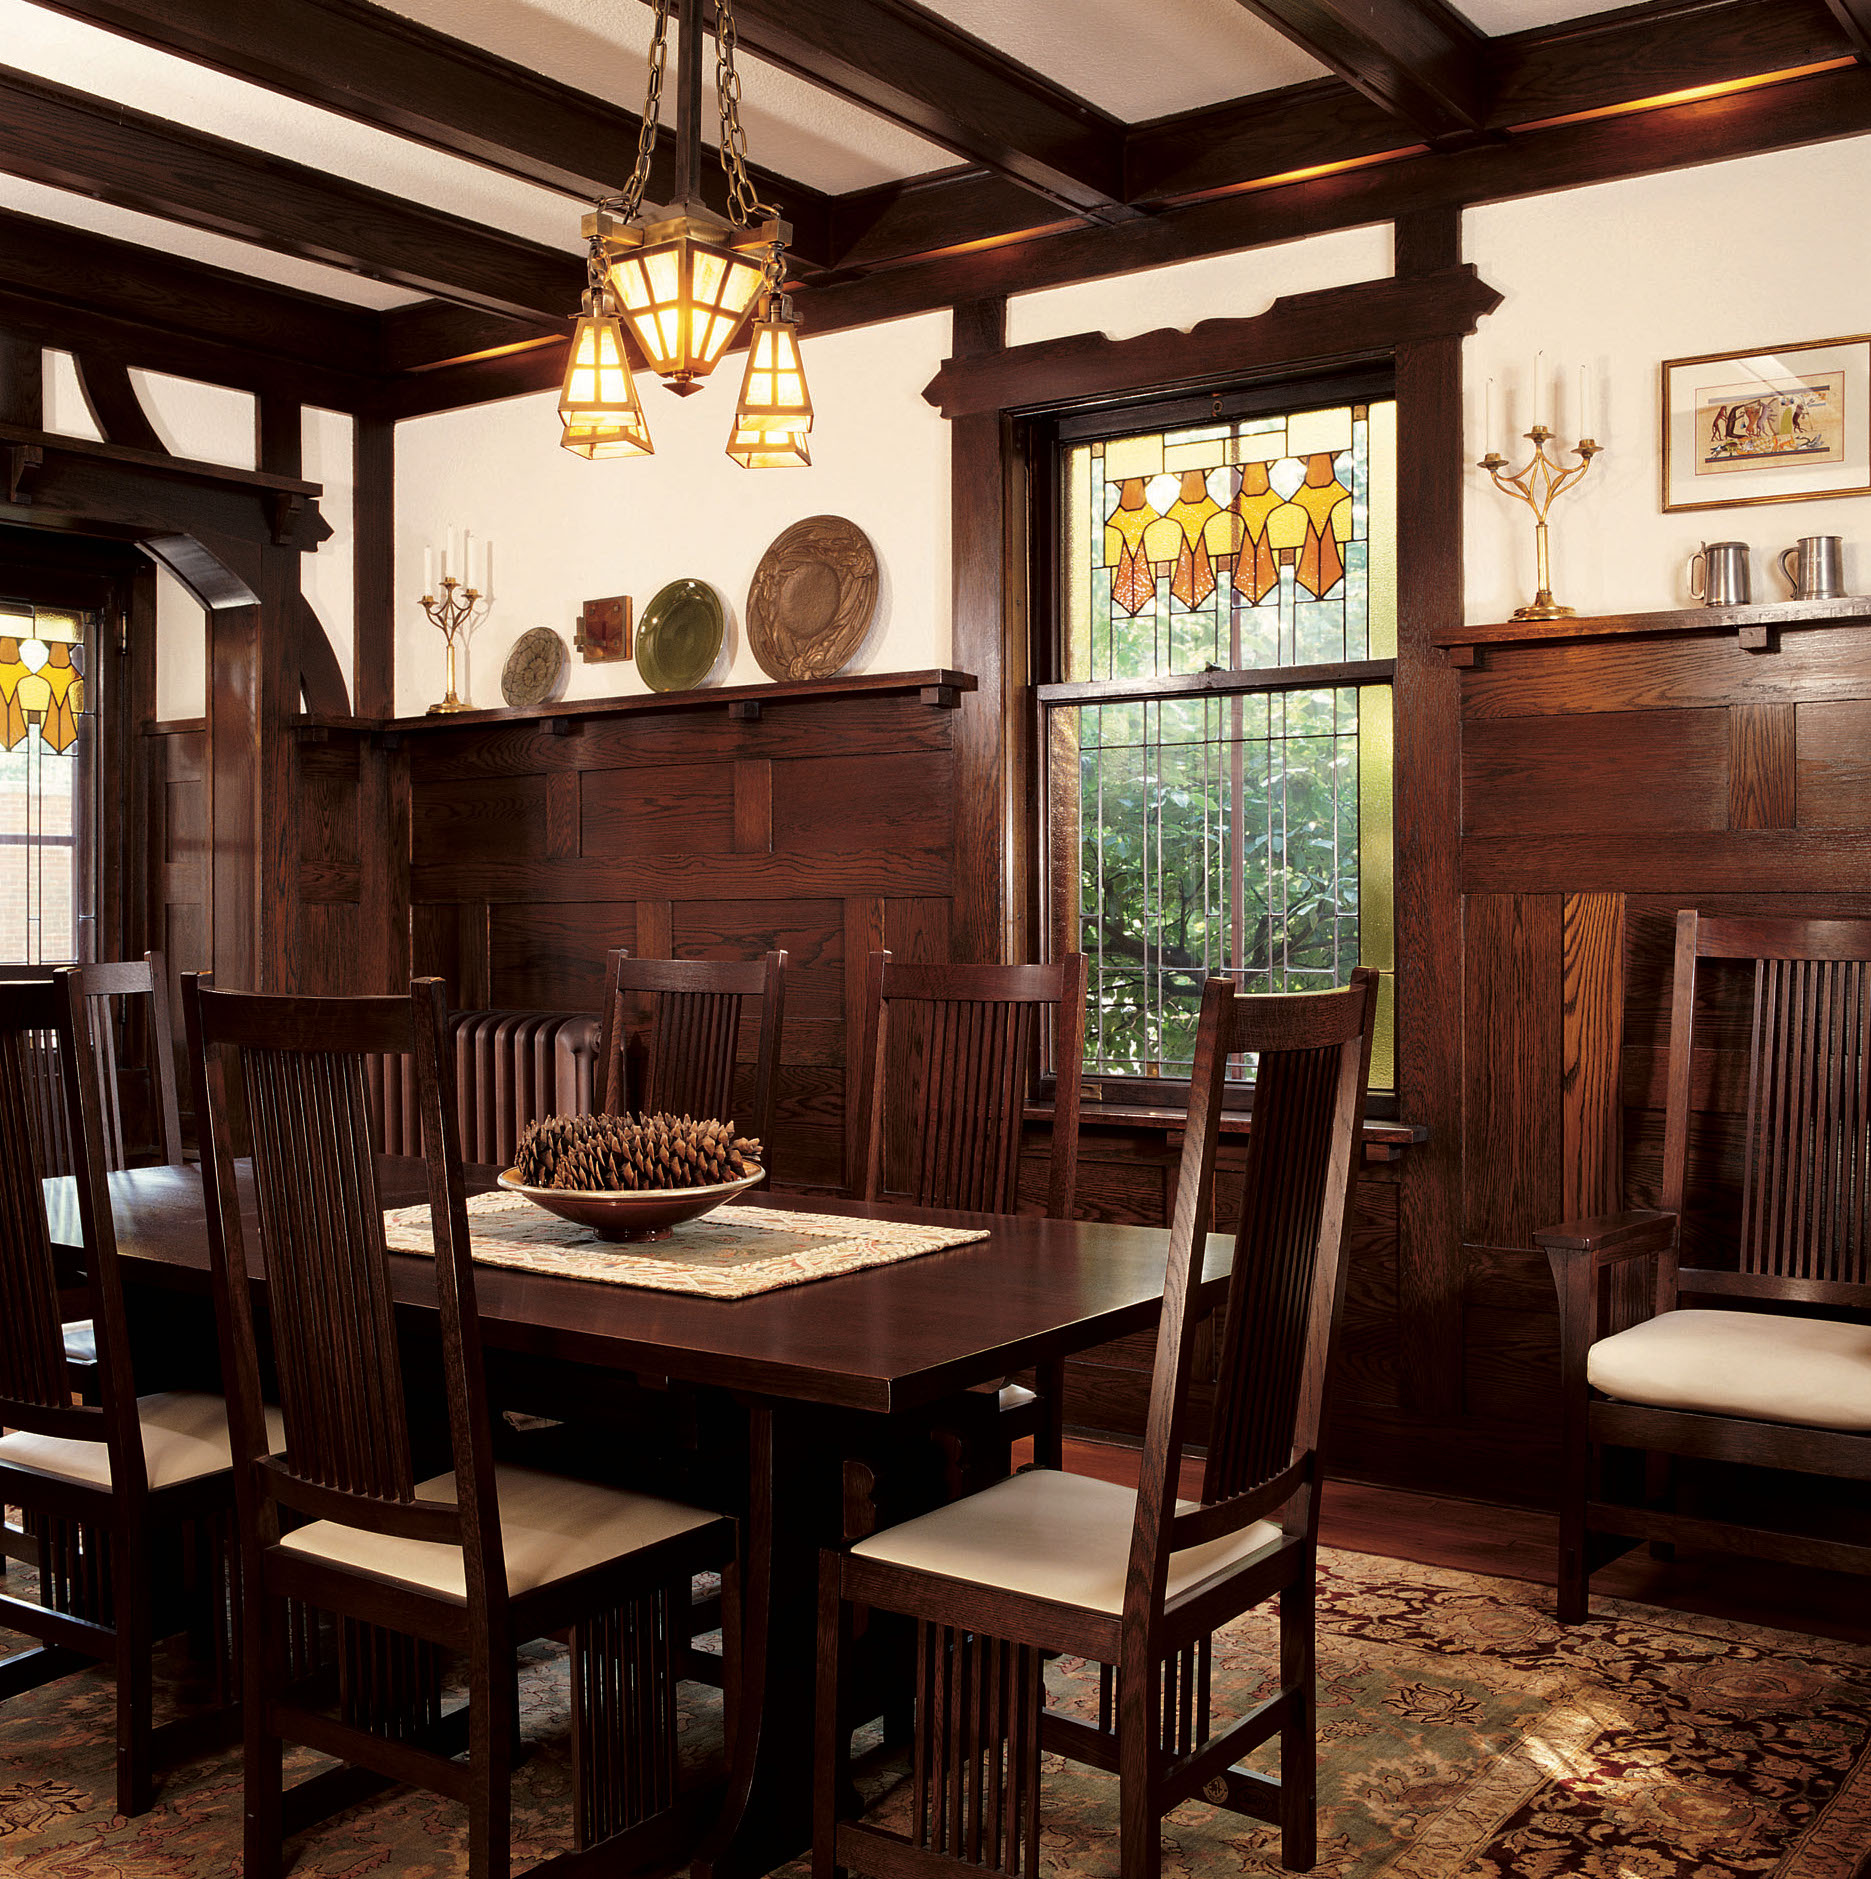 The Craftsman and Tudor Revival styles share old-world precedents.